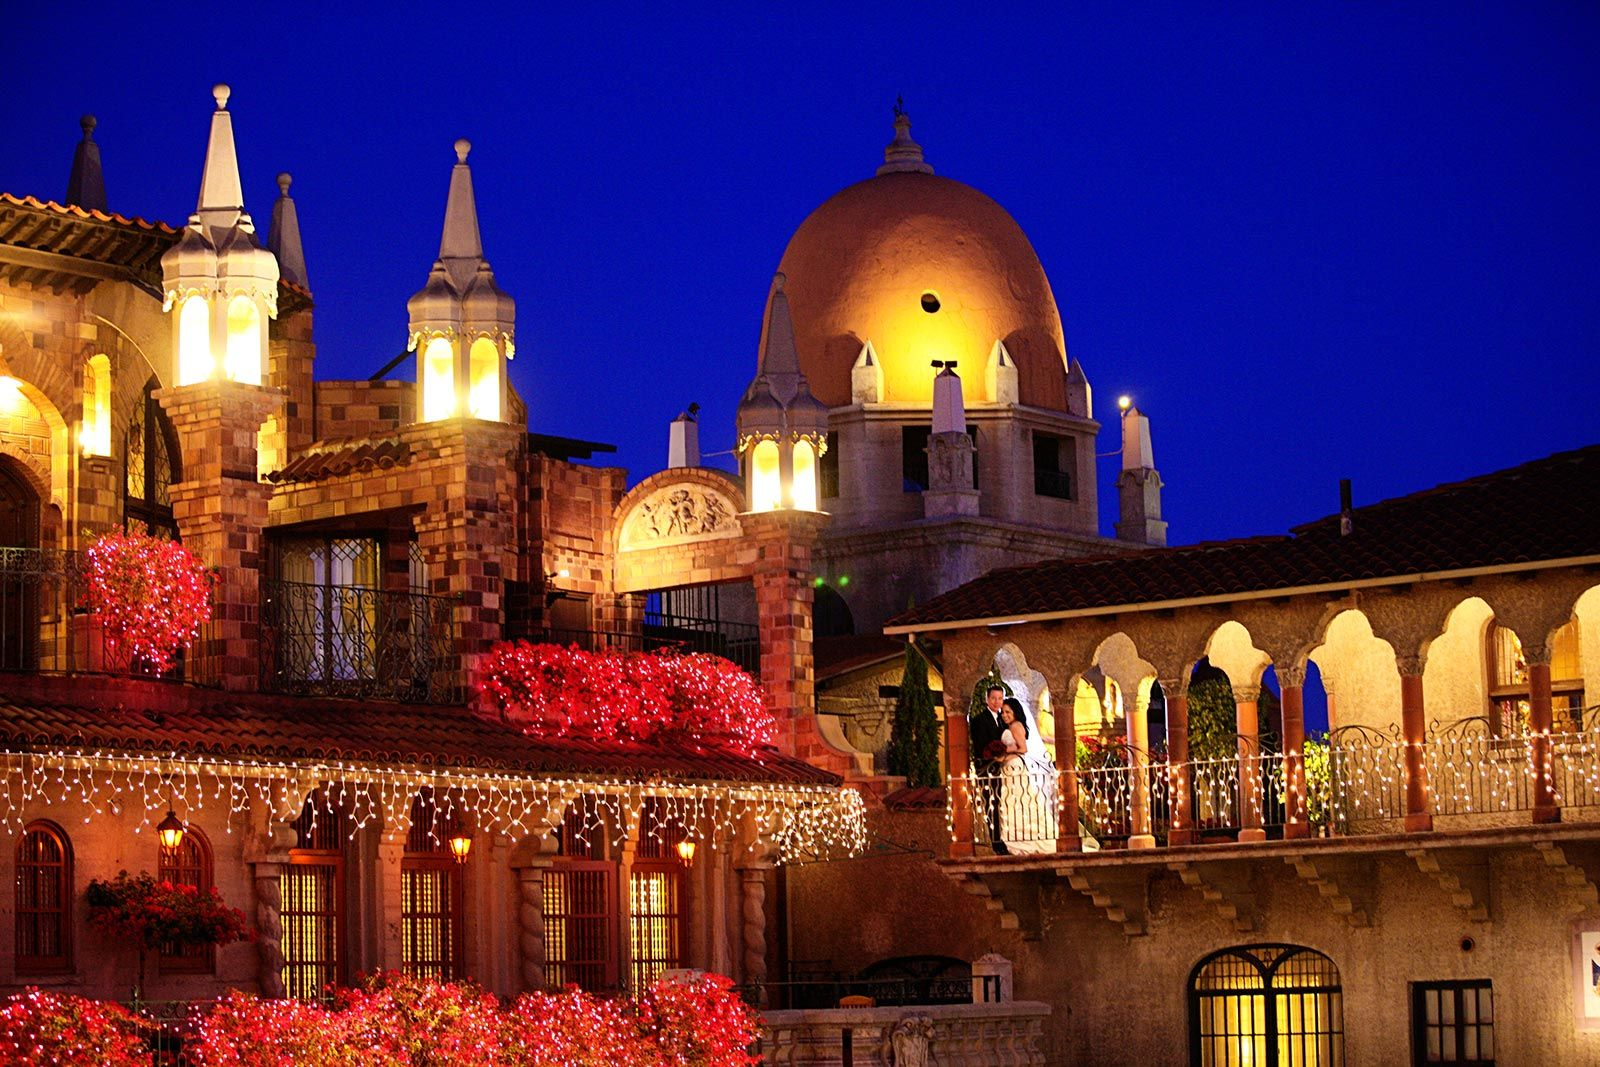 exterior of Mission Inn Hotel with bride and groom posing for pi